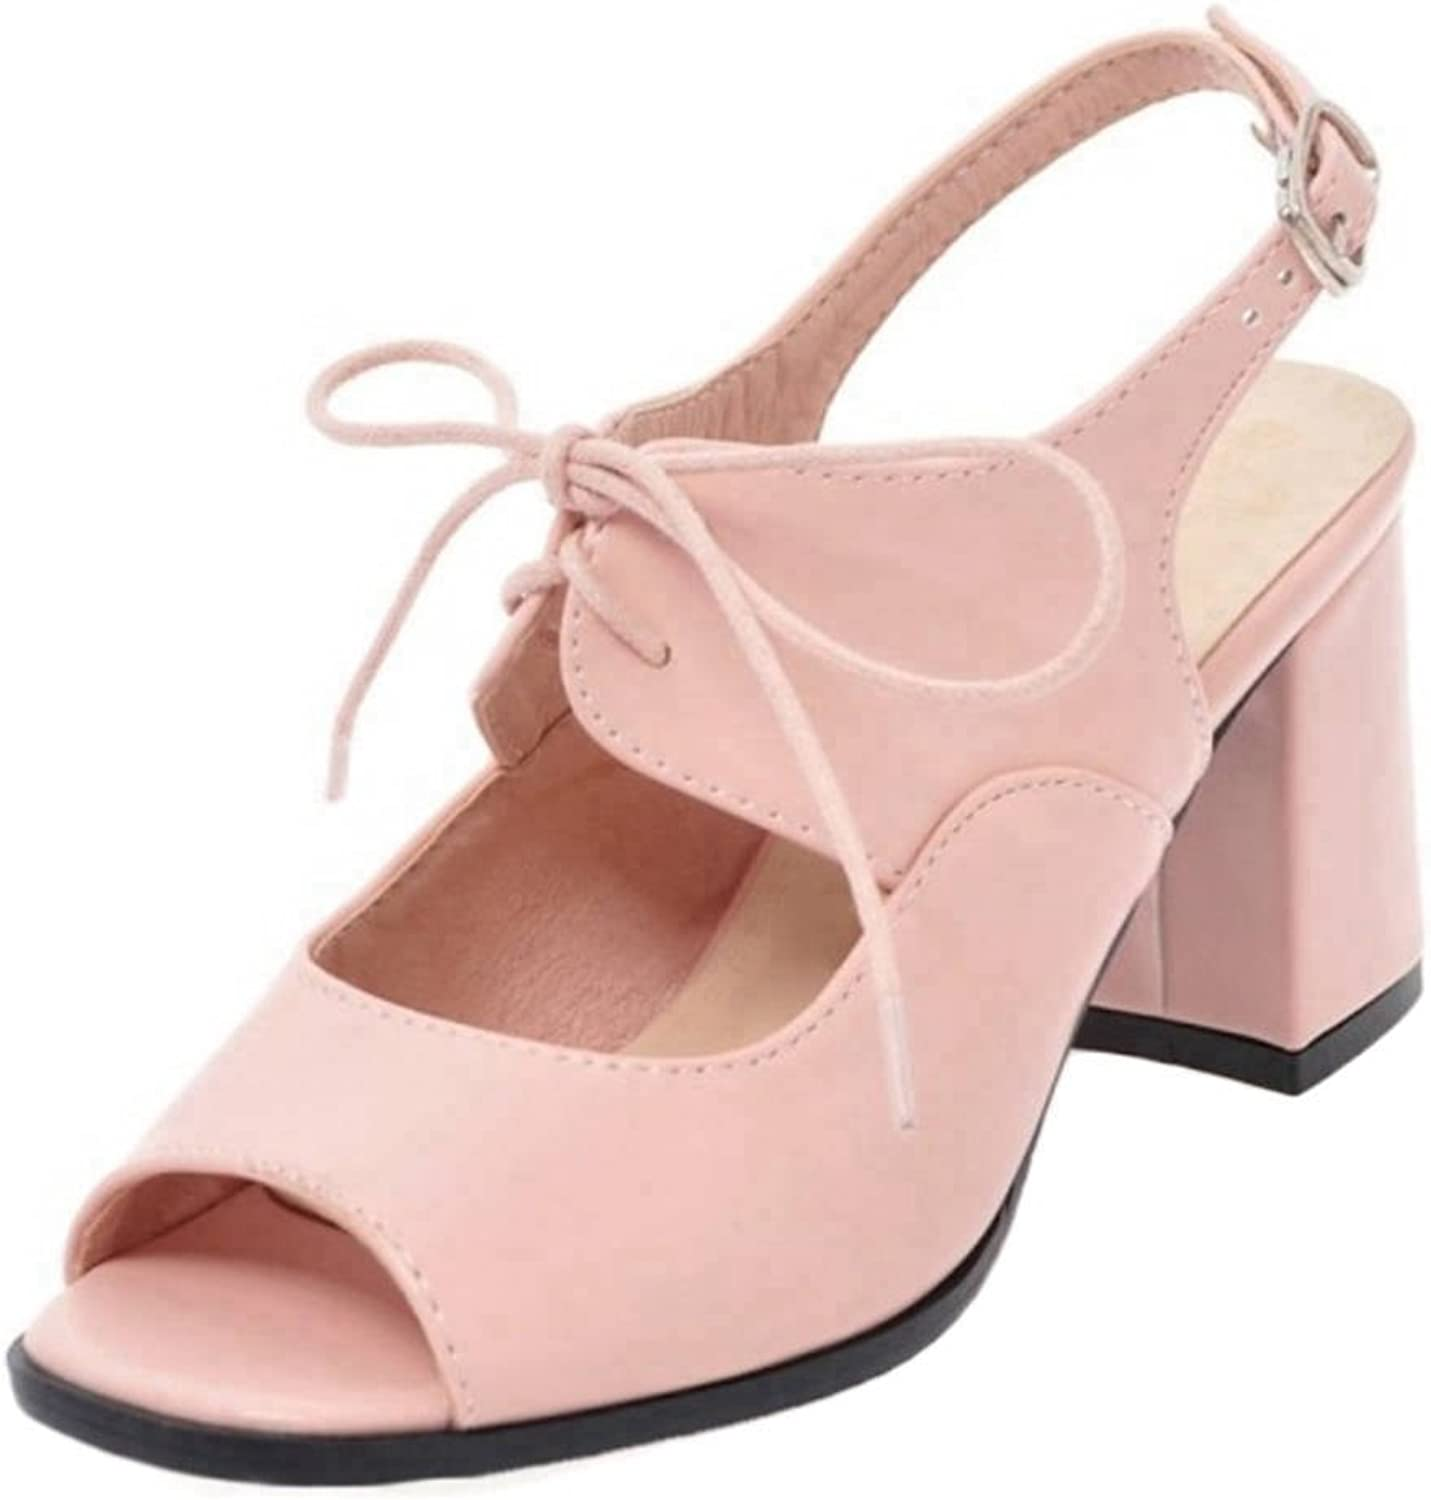 Smilice Fashion Sandals with Chunky and Open Toe Lace-up Sandals with Plus Size Available